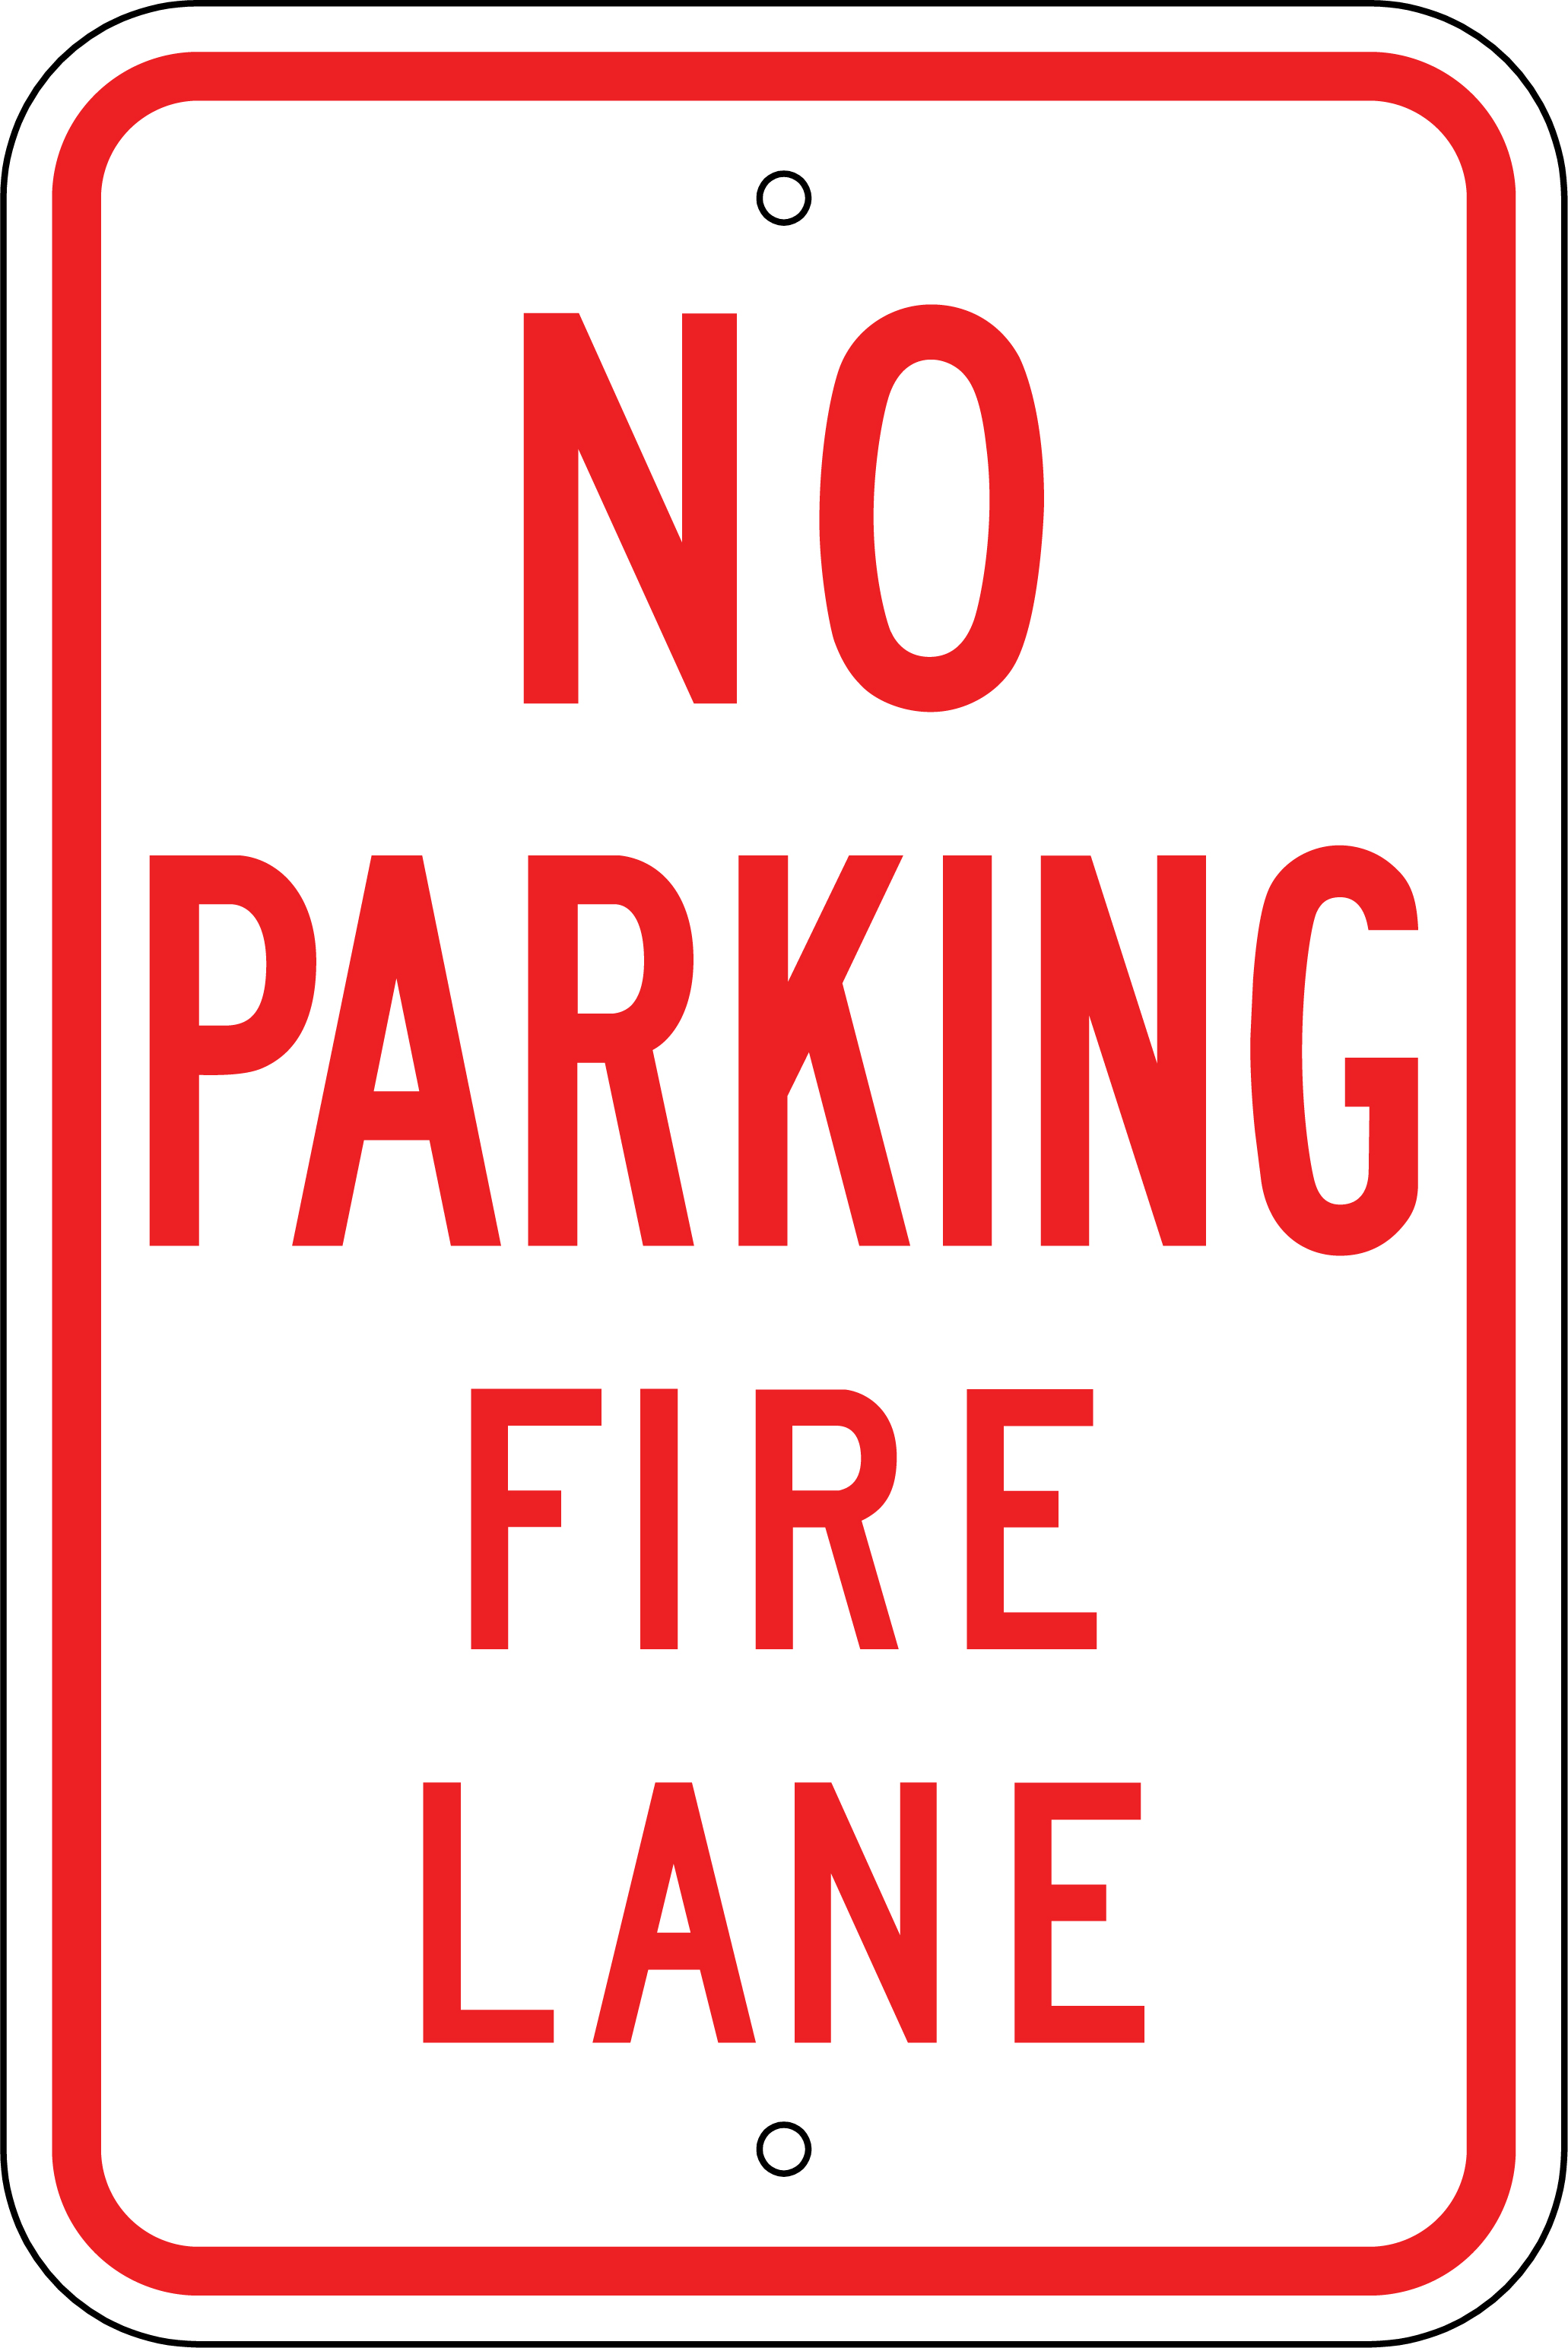 Image result for no parking in fire lane image